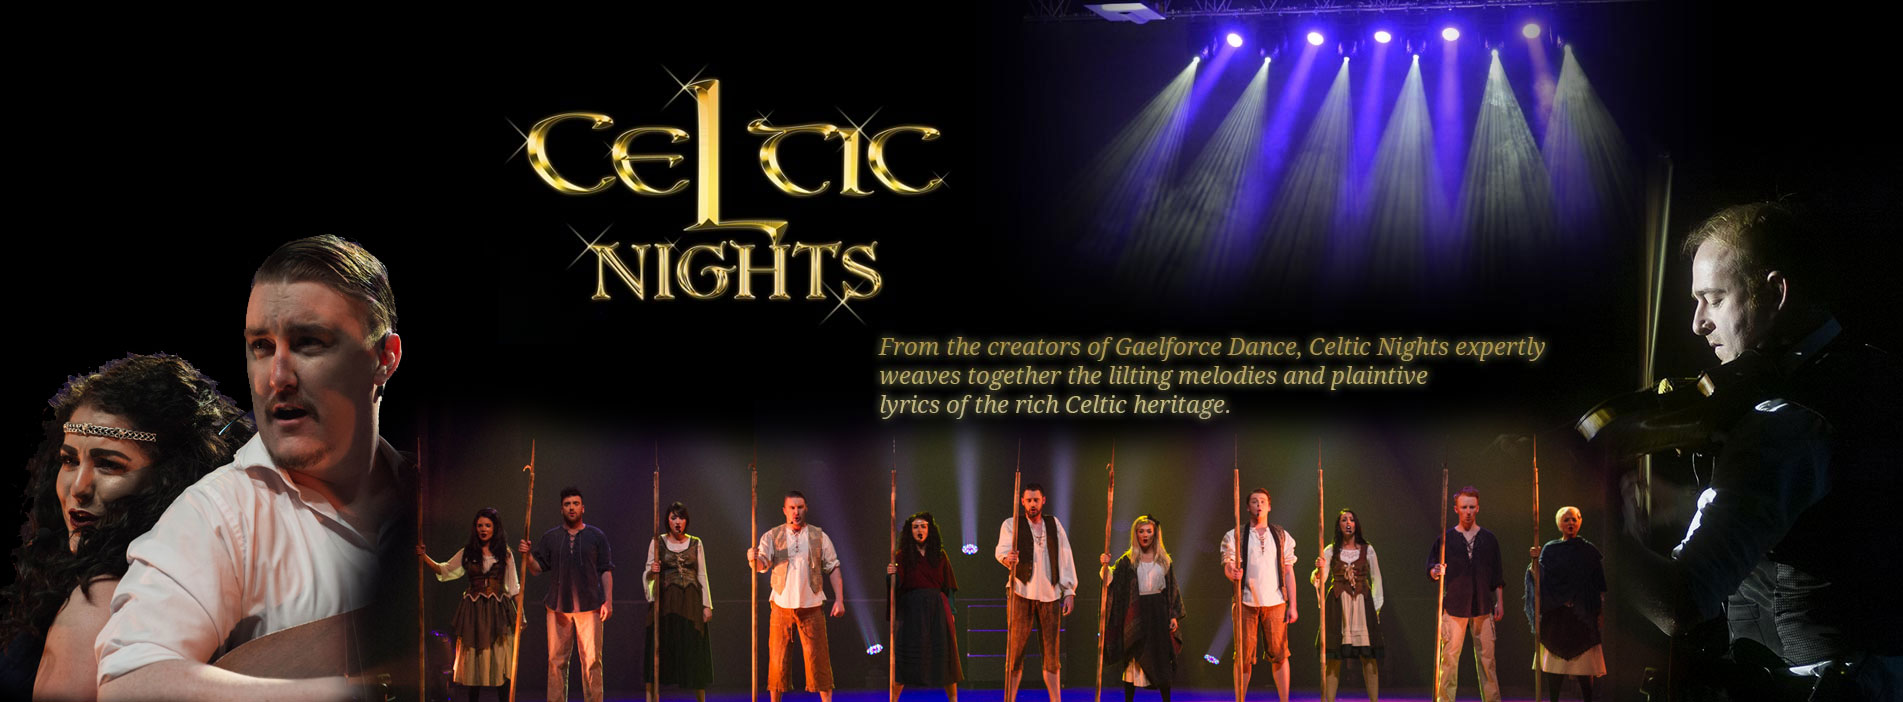 celticnights-oceans-of-hope